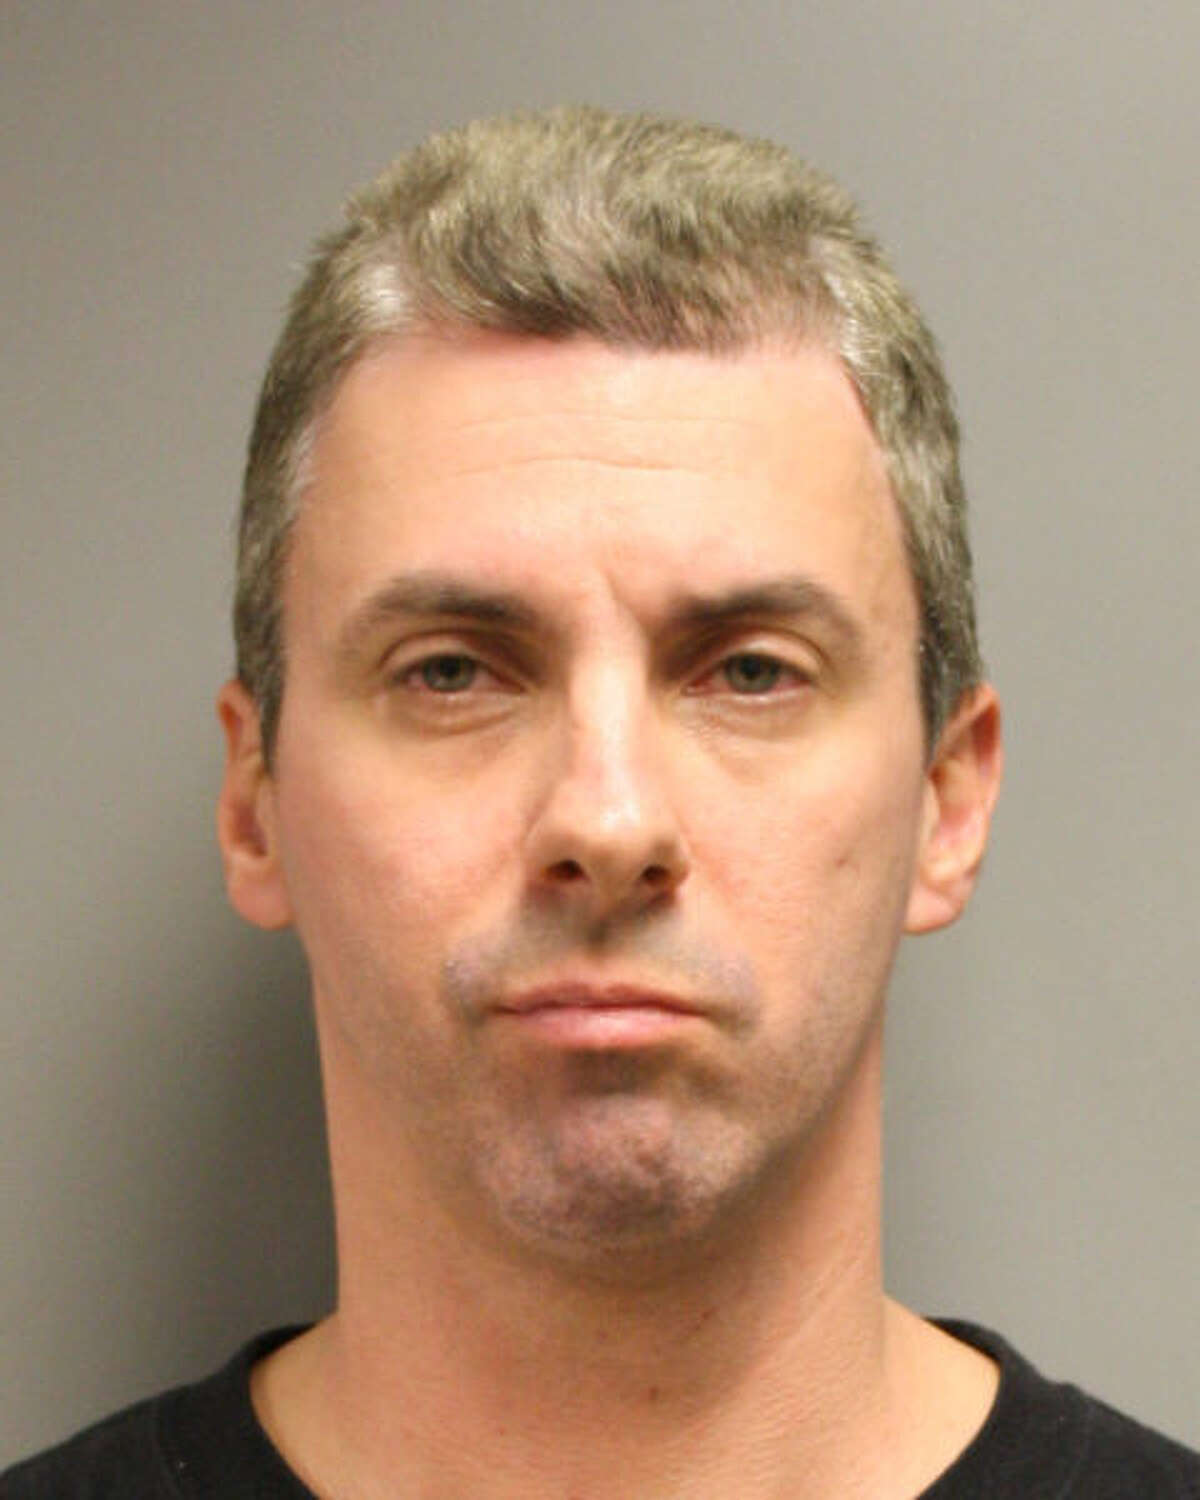 Last year, undercover FBI employees agreed to help Robert Talbot Jr. acquire explosive charges and hand grenades after identifying him through social media posts as a likely perpetrator of a terrorist attack, according to an FBI affidavit. Armed with fake explosives and accompanied by undercover agents, Talbot was arrested on route to rob an armored car on March 27, 2014.